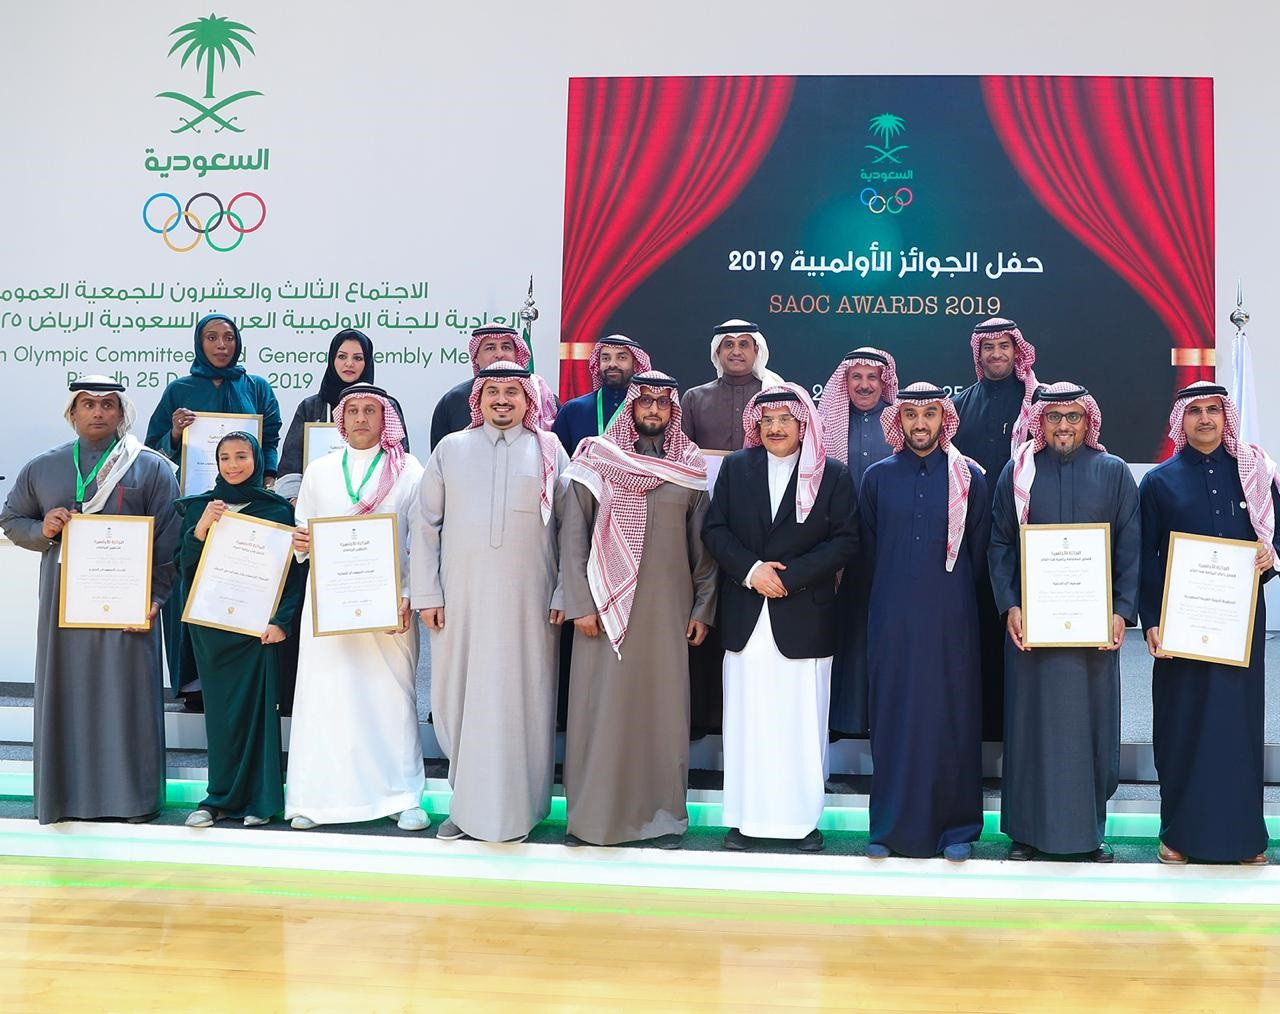 Saudi Arabian Olympic Committee Awards held for first time